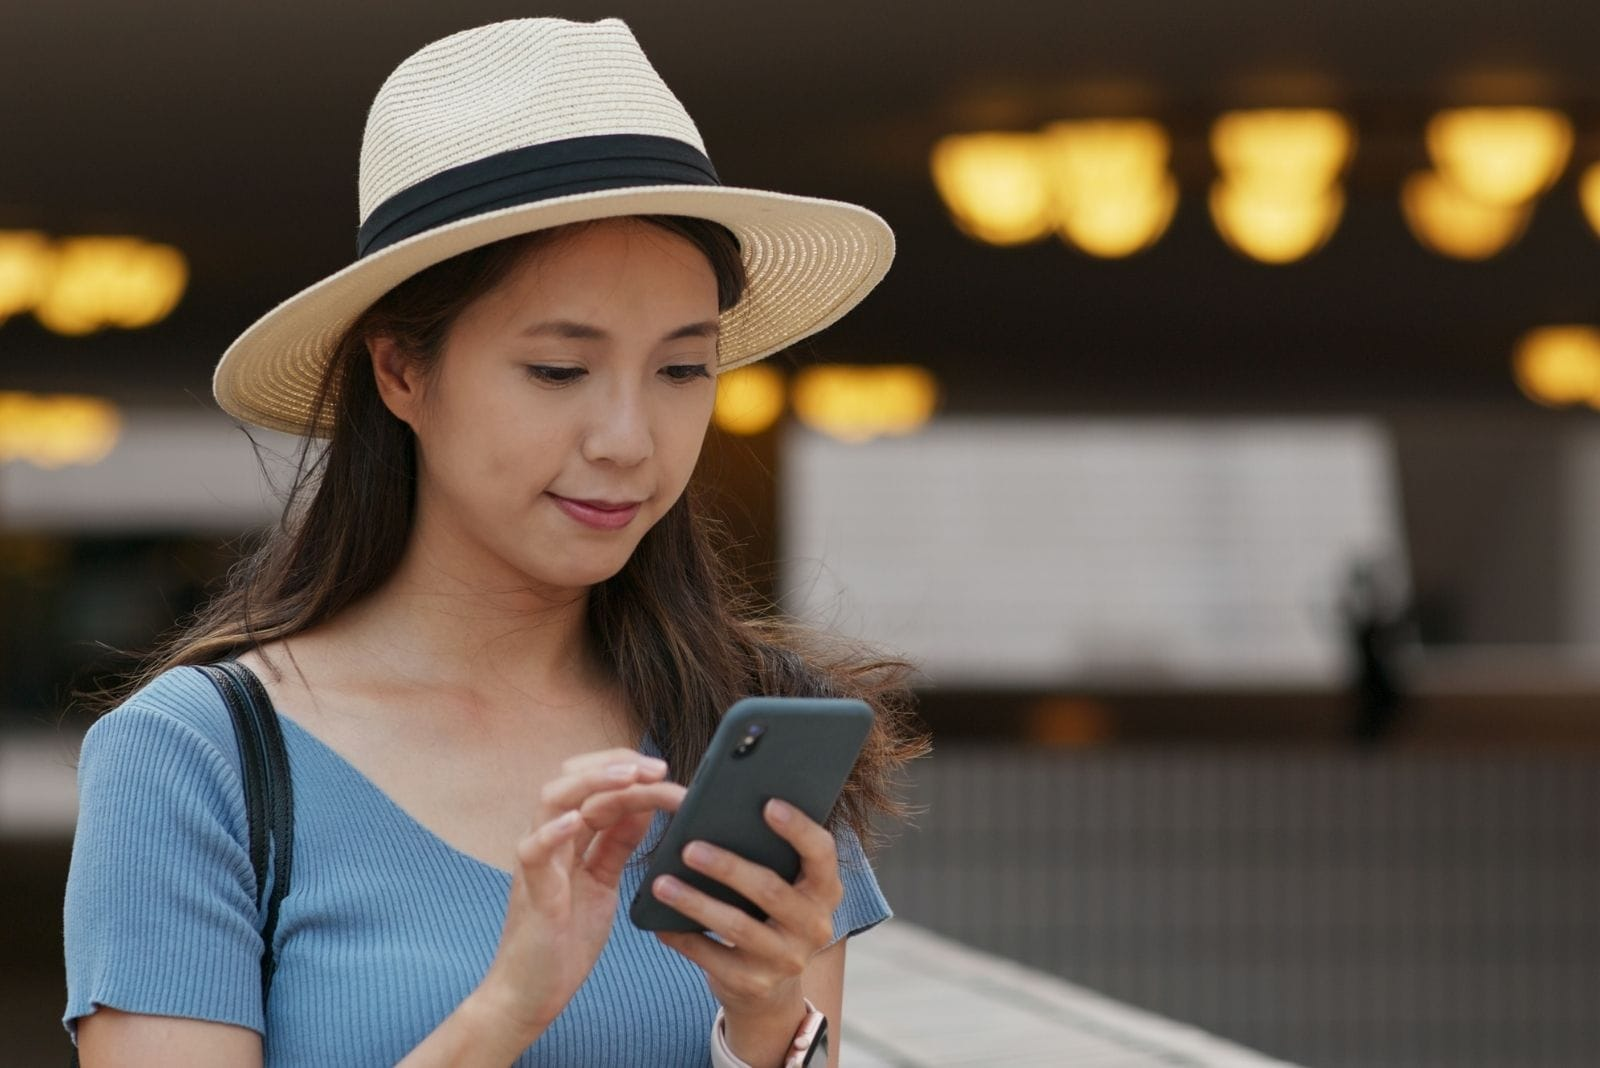 woman using smartphone with asian descent wearing hat